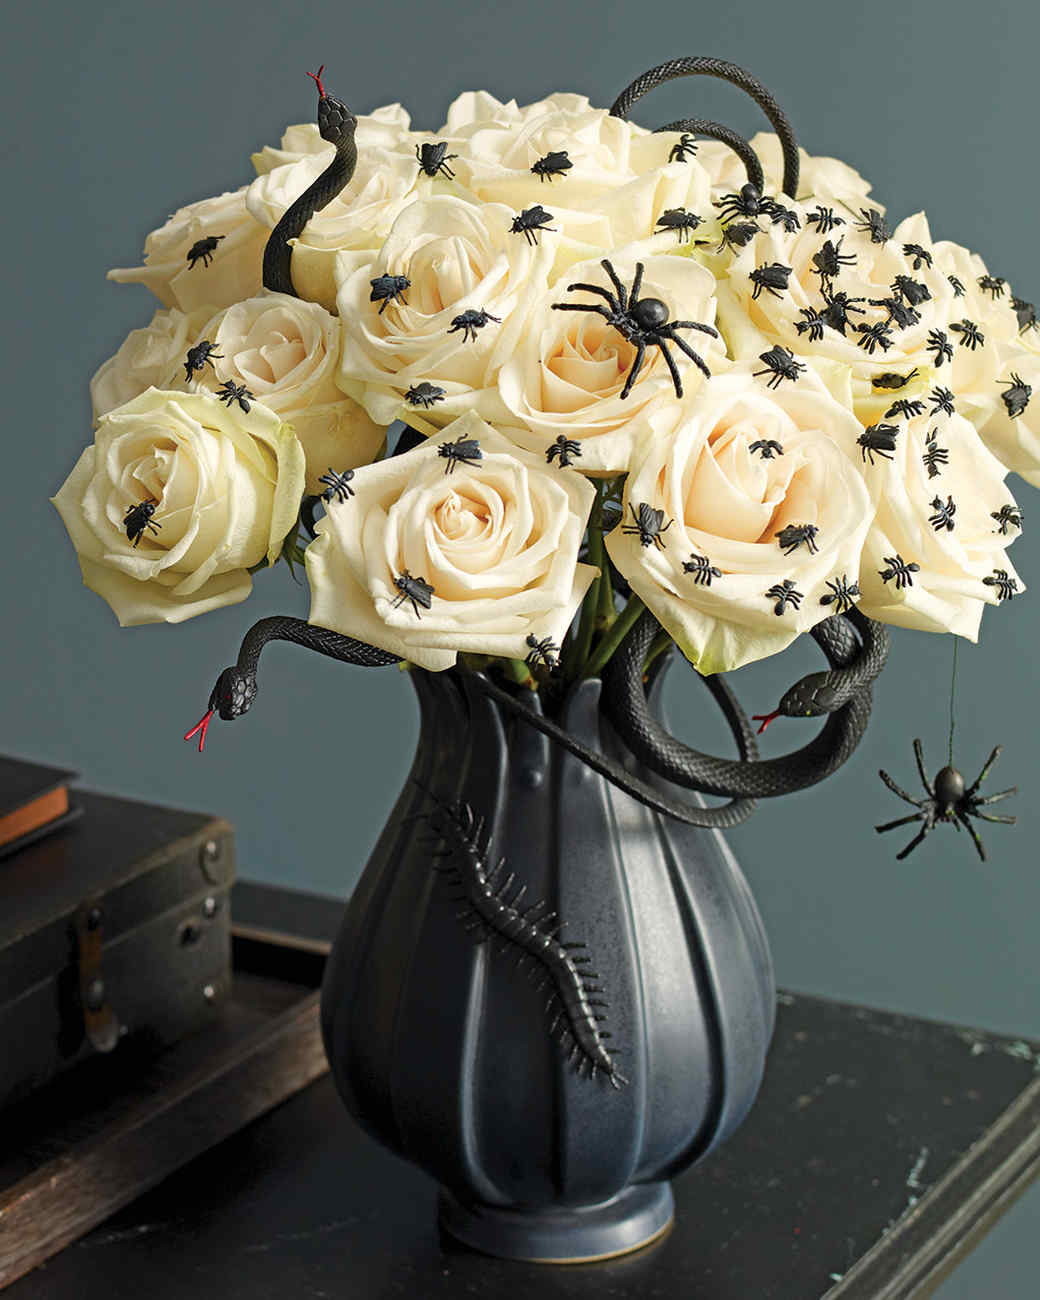 deranged halloween centerpiece martha stewart - Halloween Centerpieces